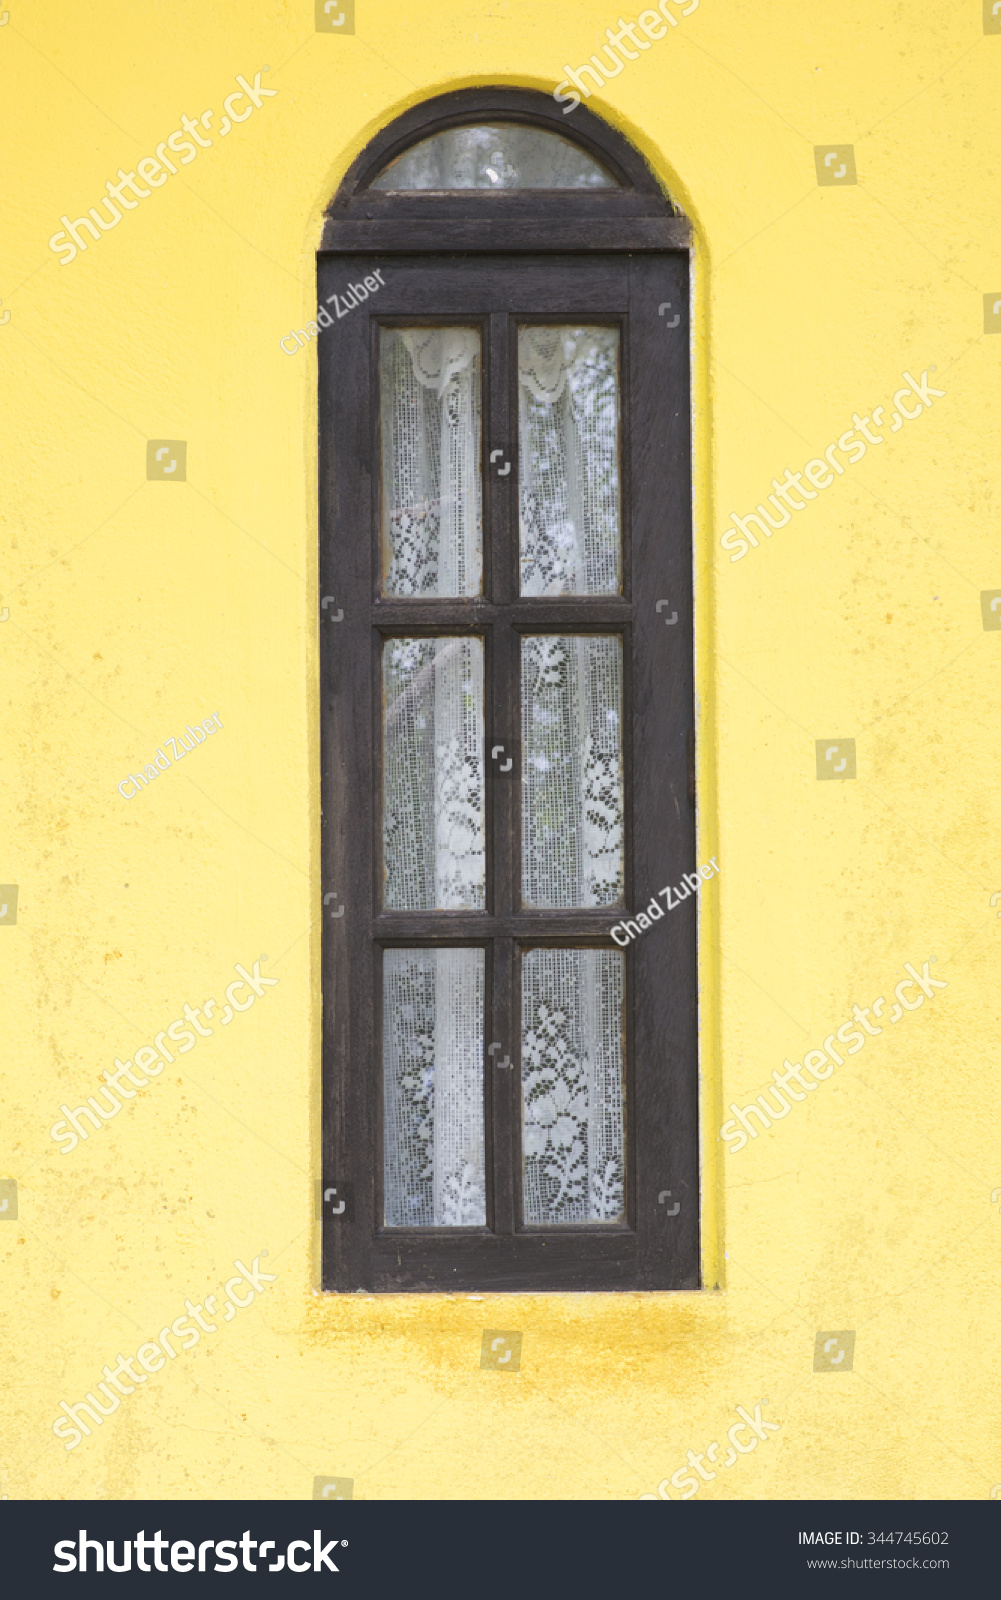 Exterior Tall Wooden Rustic Window Glass Stock Photo (Royalty Free ...